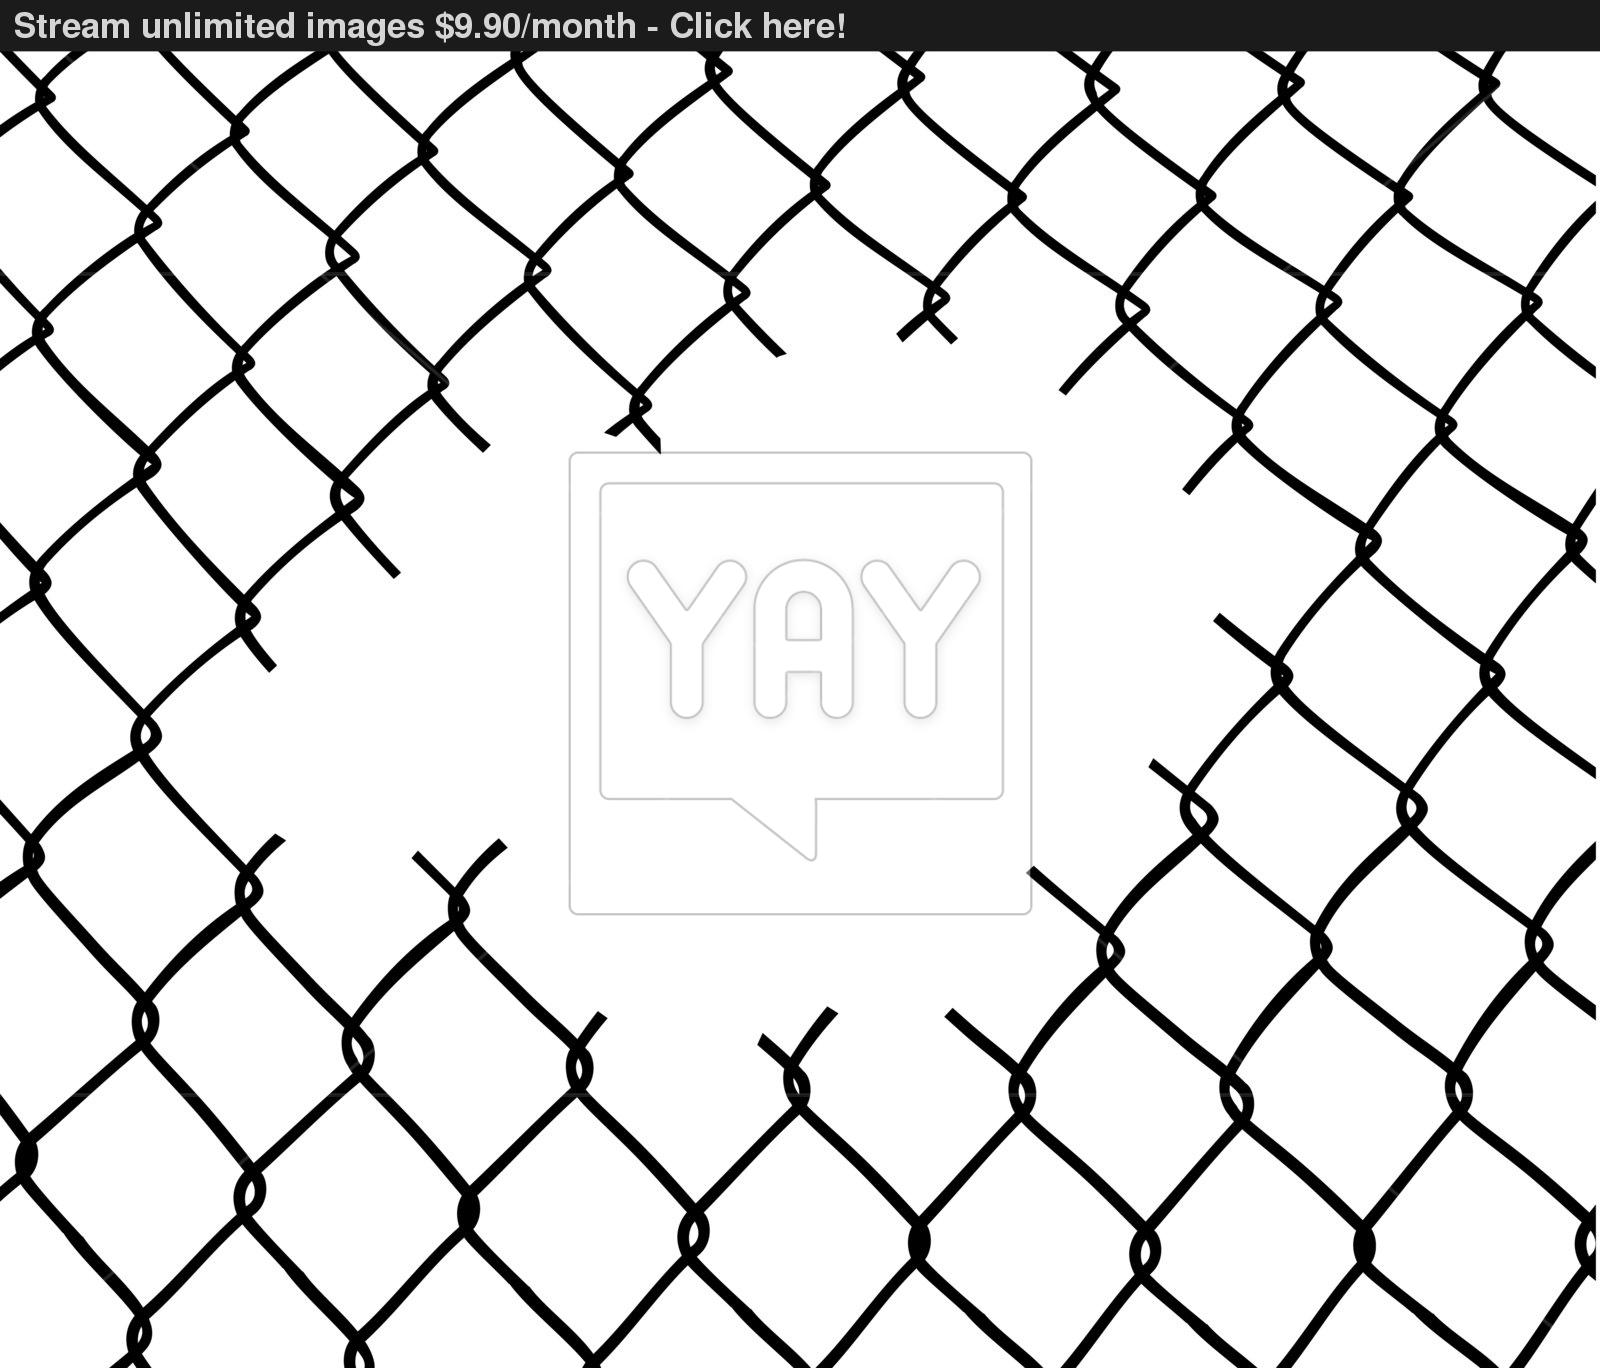 Chain Link Fence Drawing At Getdrawings